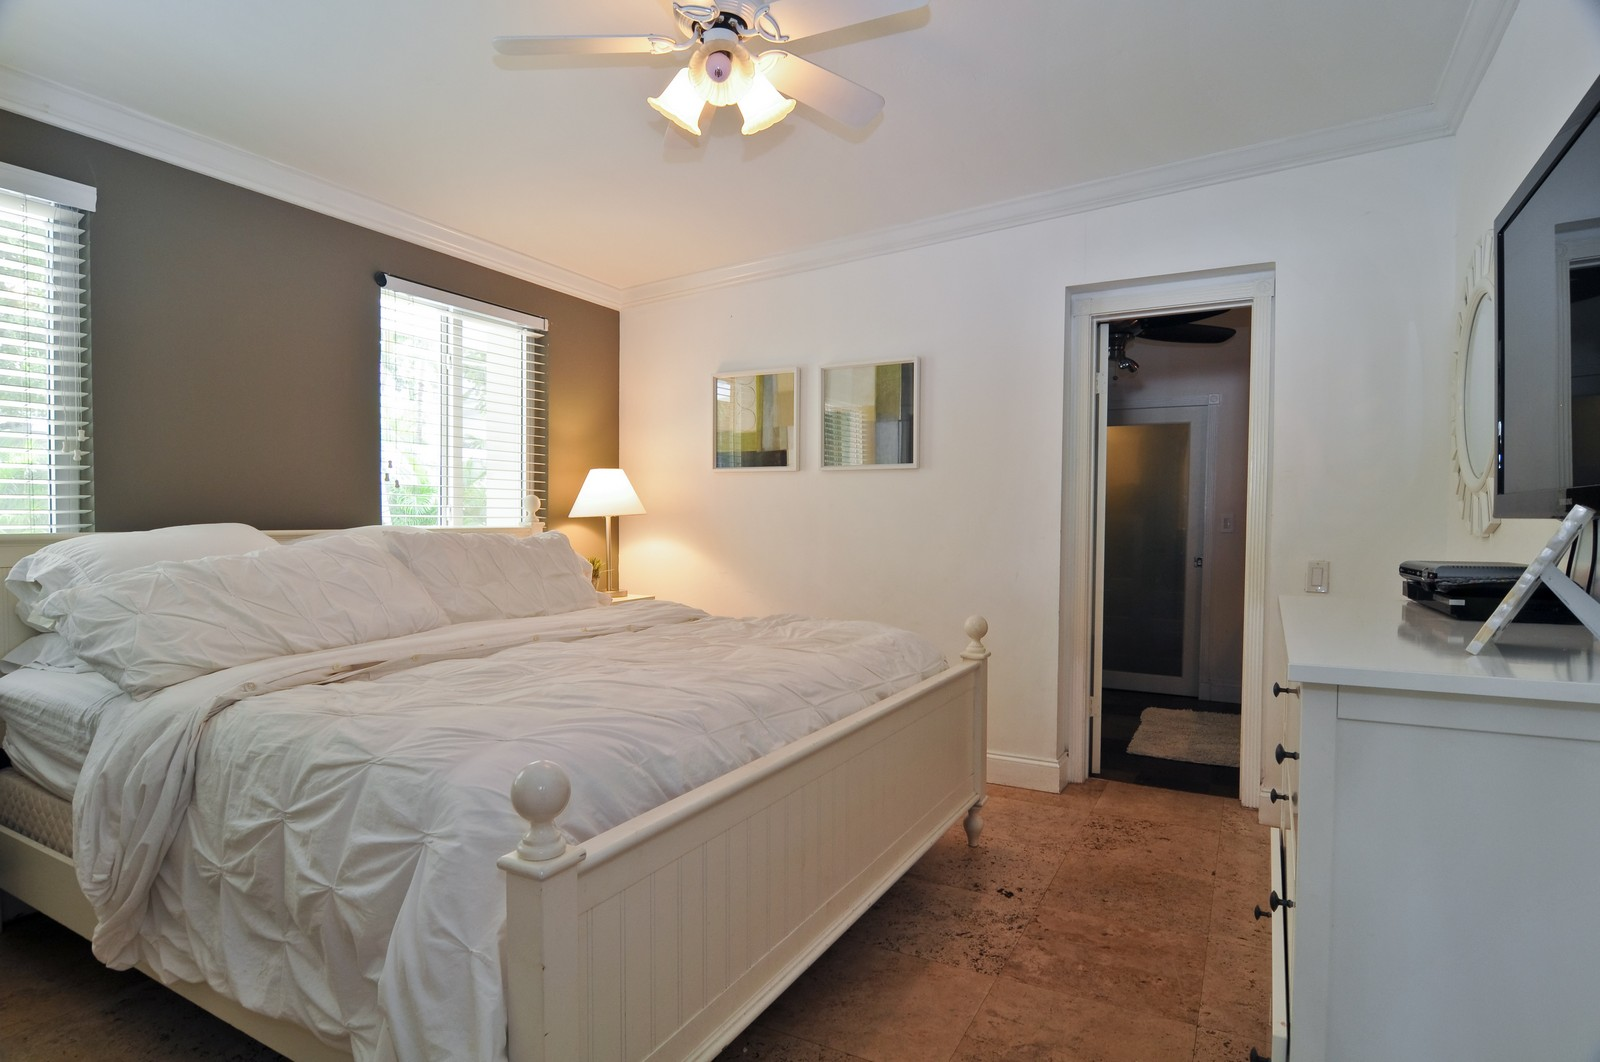 Real Estate Photography - 285 Glenrigde Rd, Key Biscayne, FL, 33149 - Master Bedroom